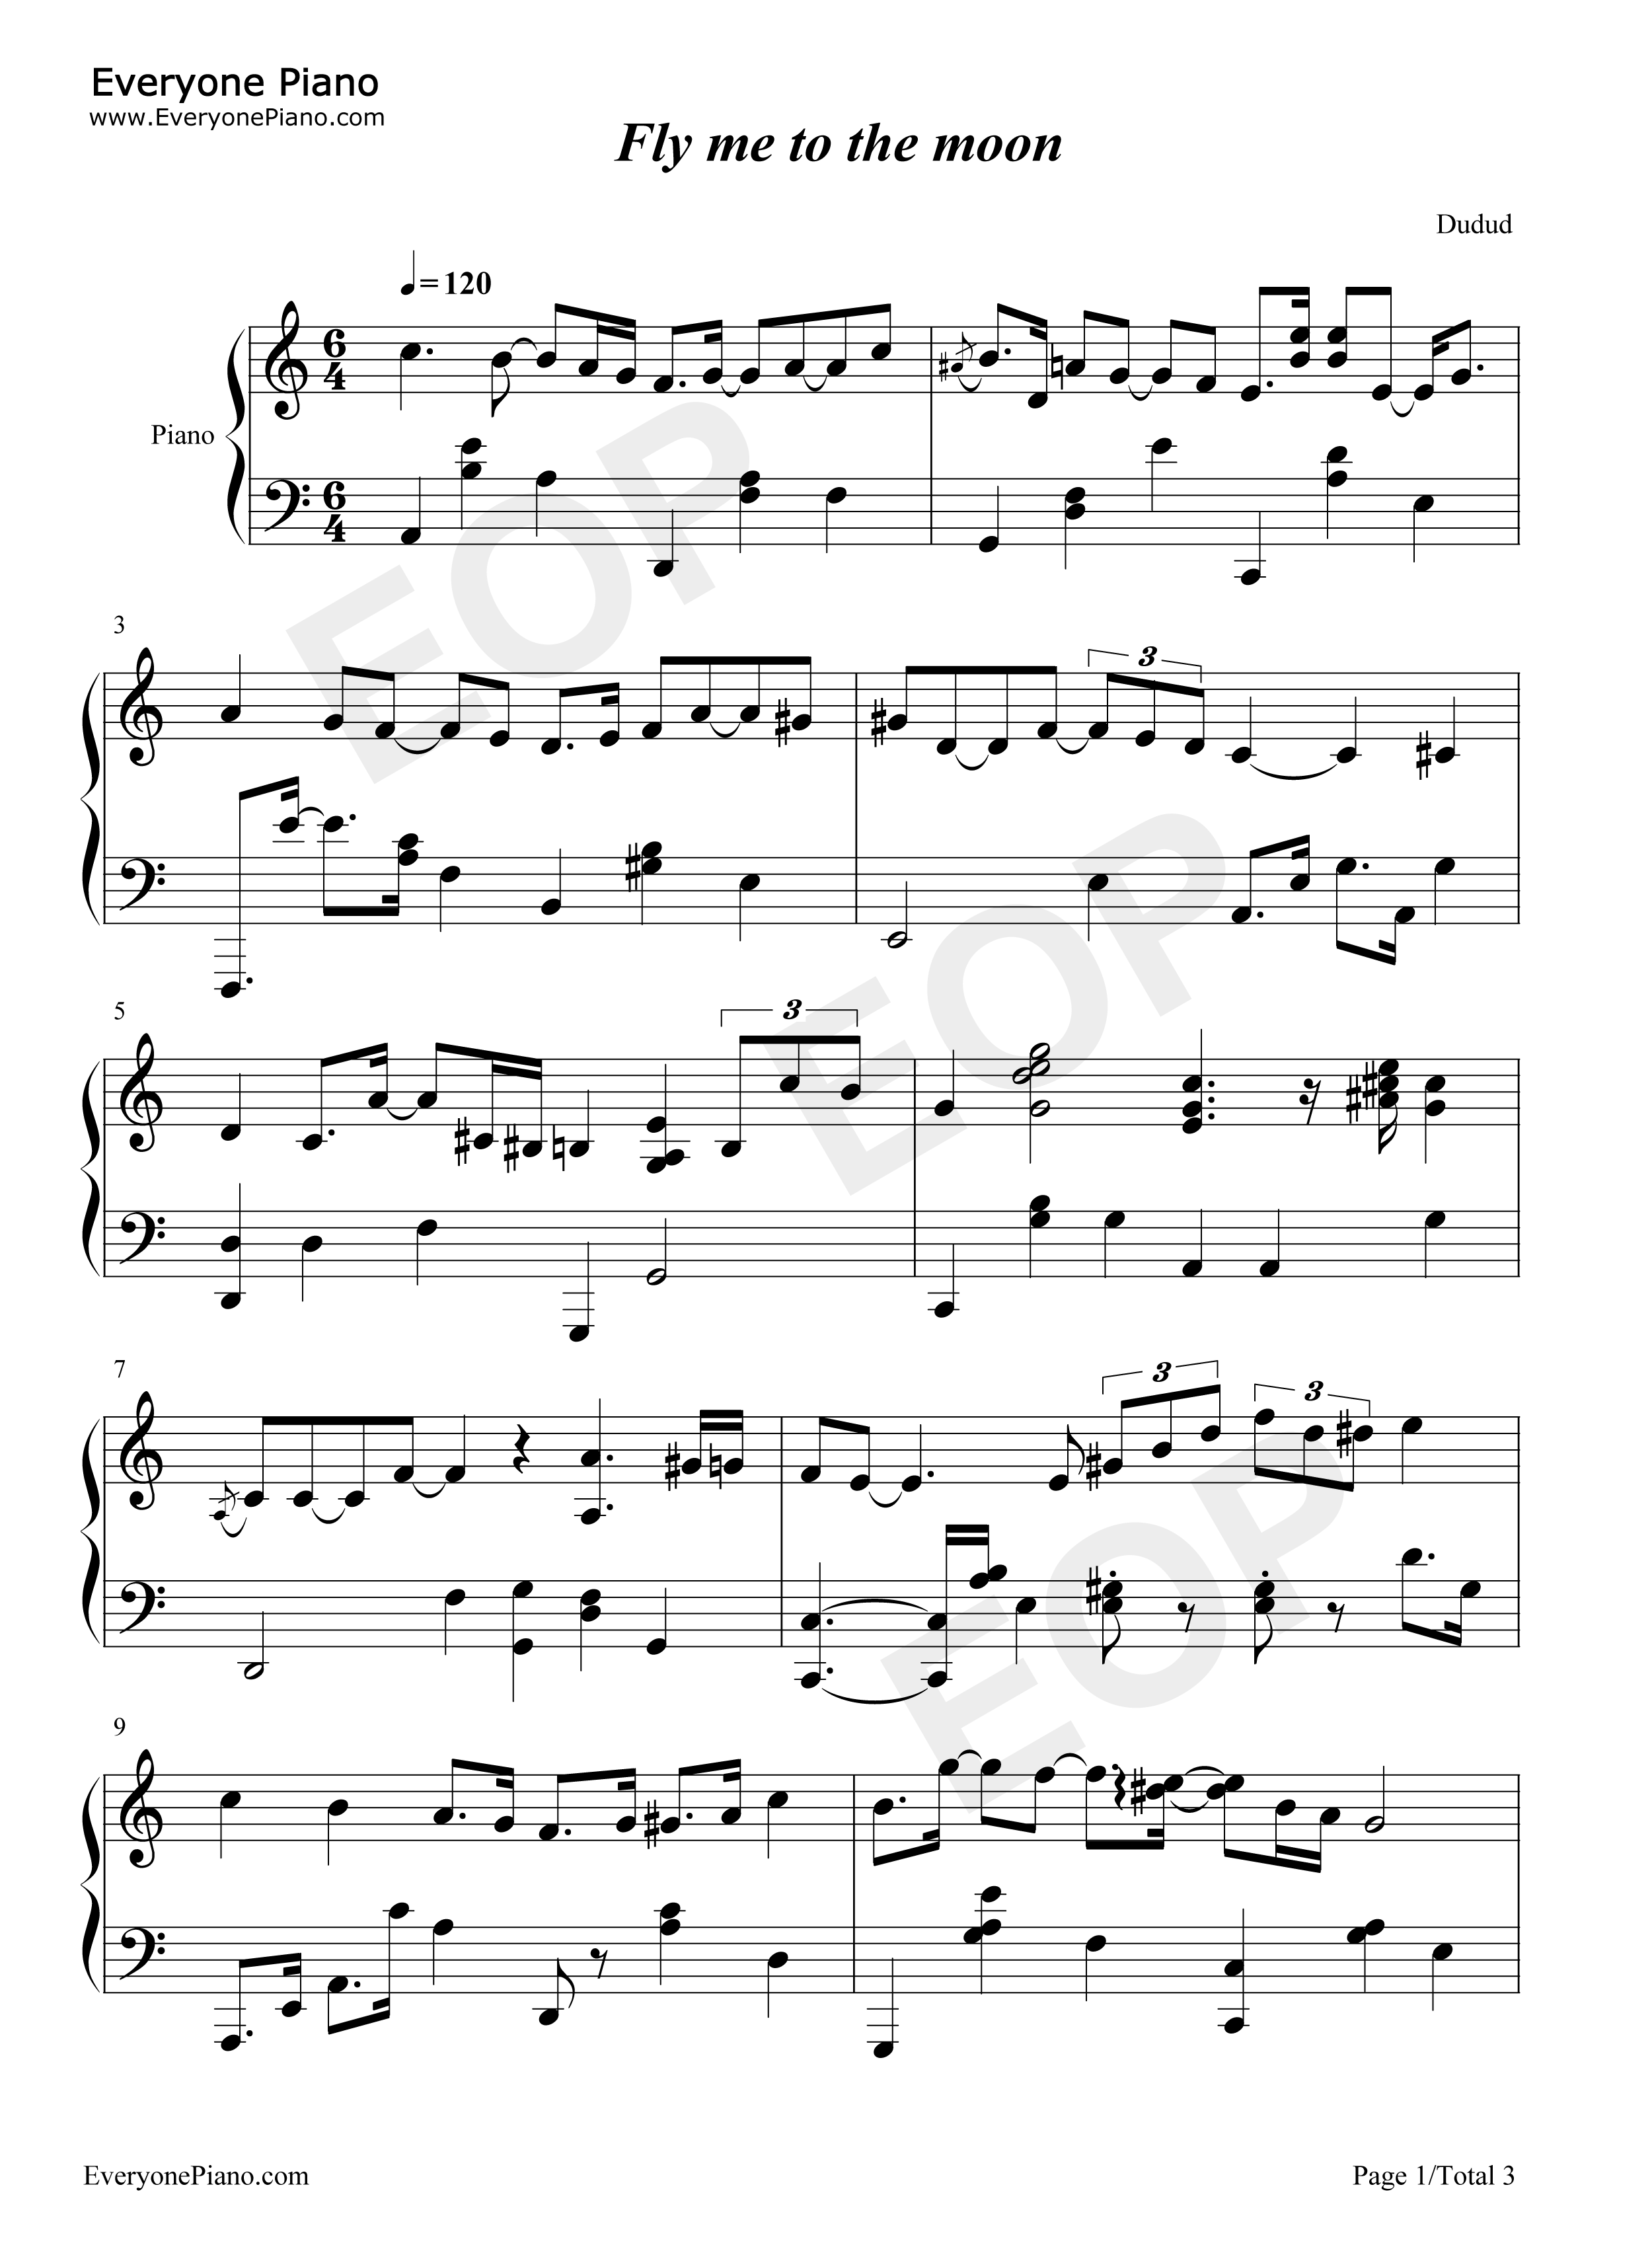 Fly me to the moon bart howard stave preview 1 free piano sheet listen now print sheet fly me to the moon bart howard stave preview 1 hexwebz Choice Image